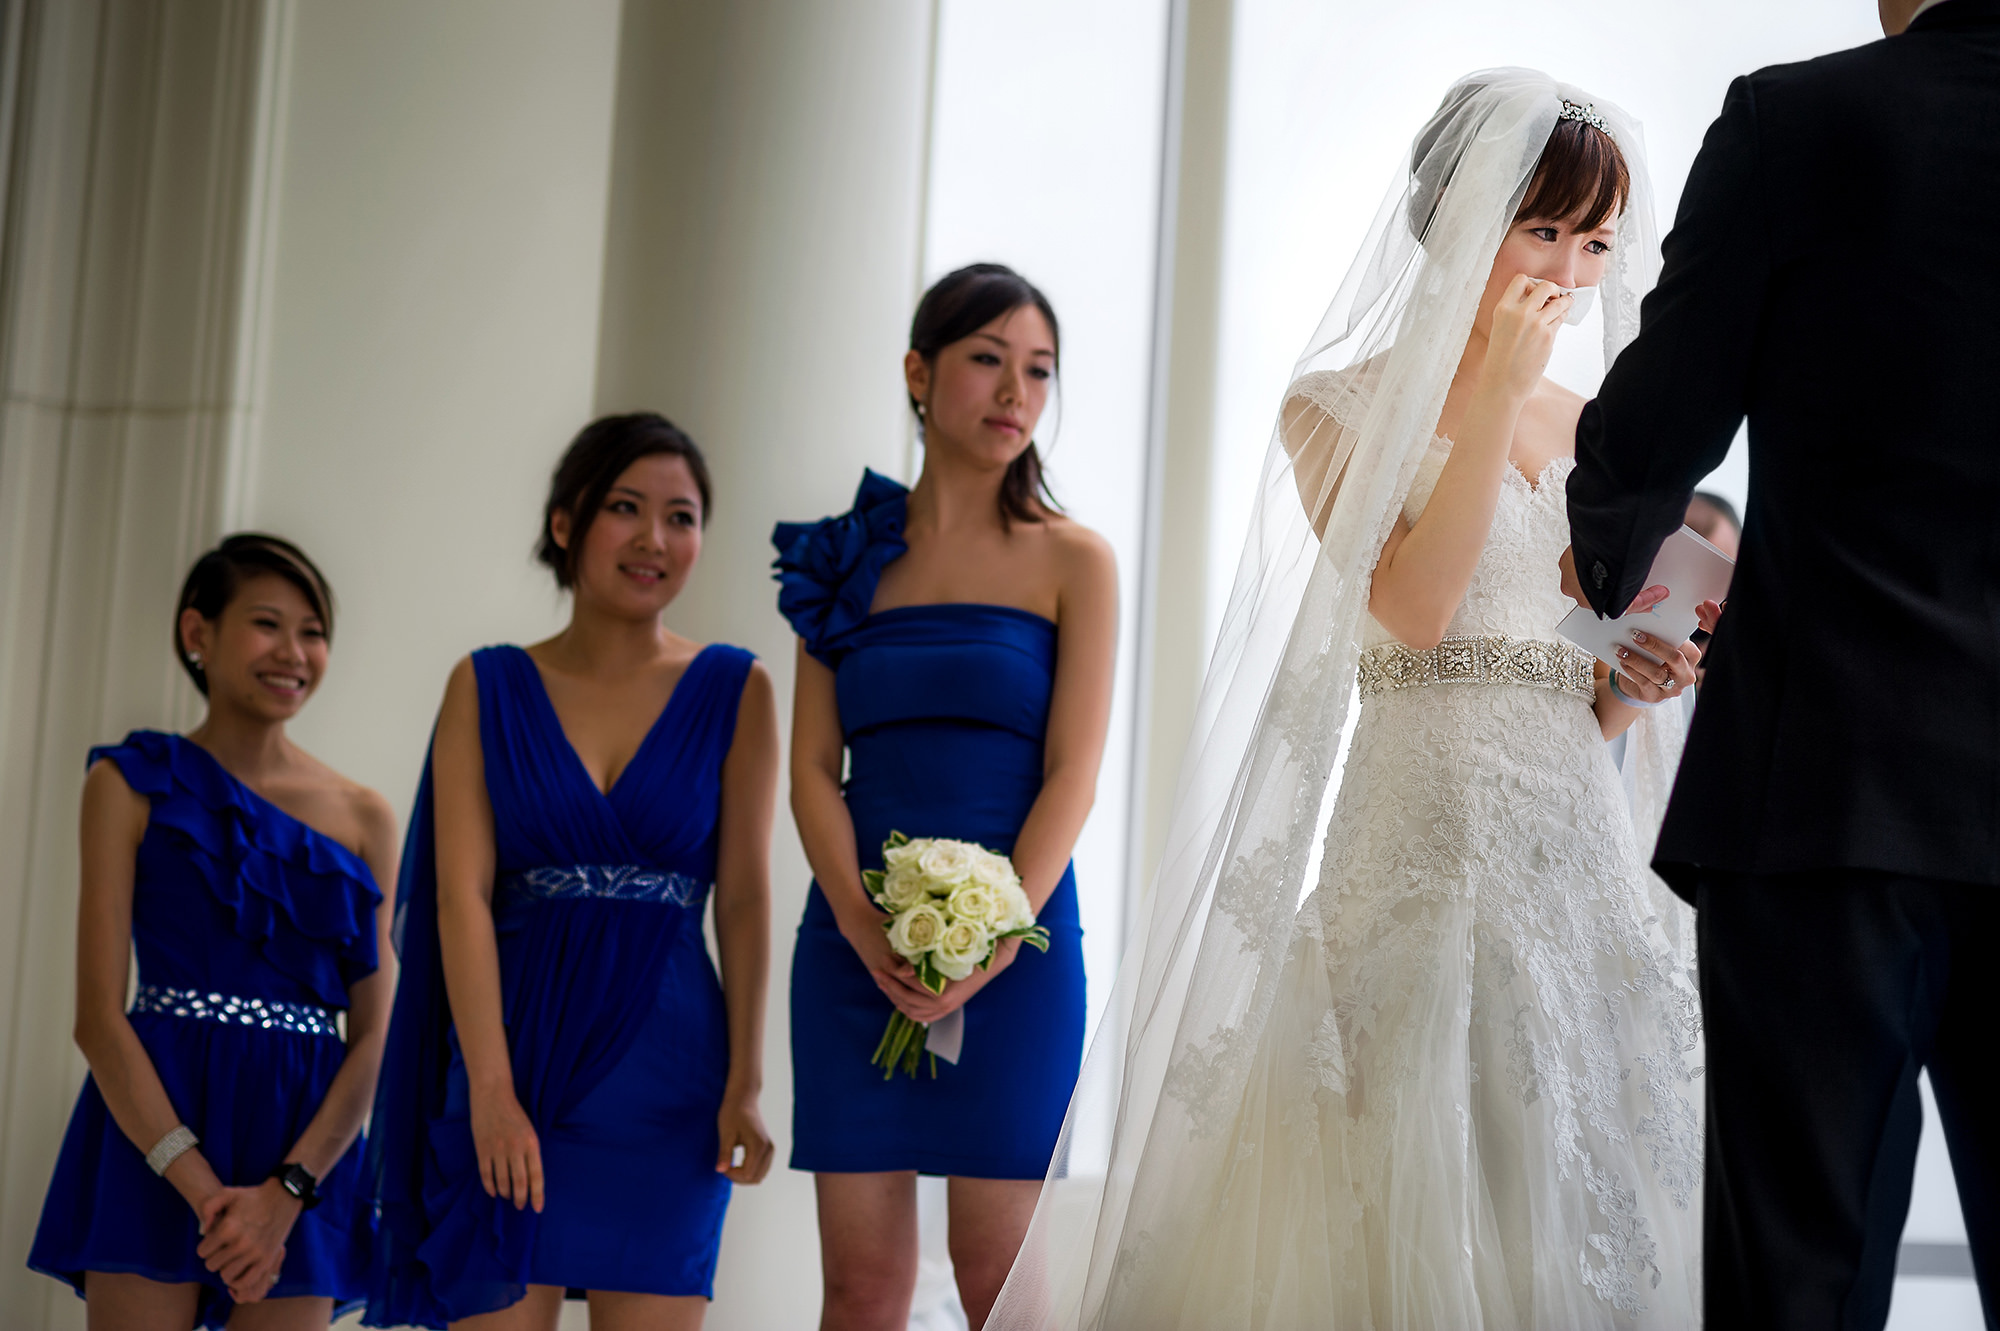 Bride in lace gown and veil wiping away ears with bridesmaids - Davina + Daniel